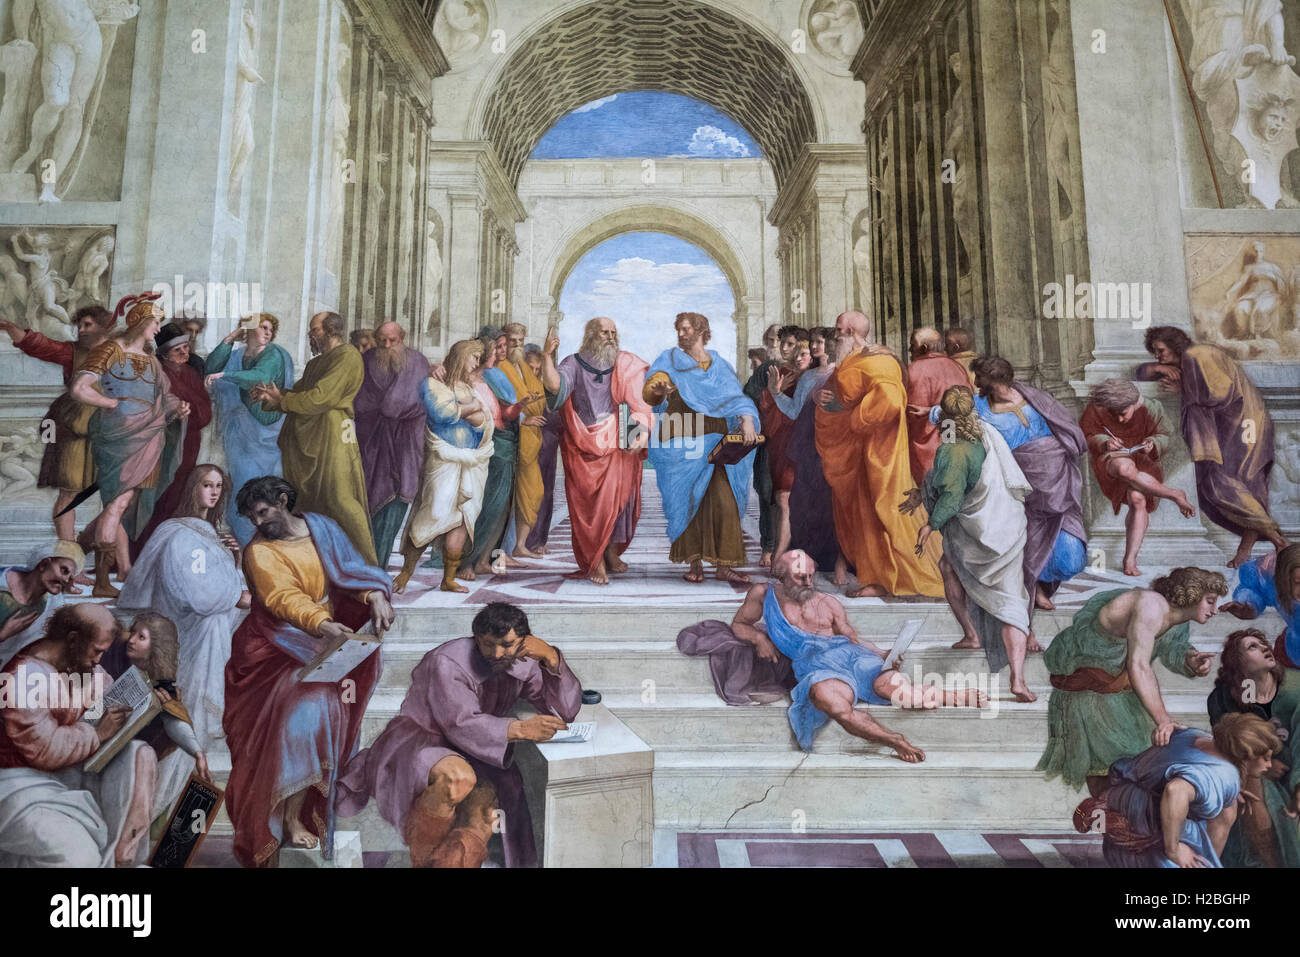 Raphael (1483-1520), The School of Athens fresco (1509–1511). Stanza della Segnatura, Vatican Museums, Rome. Stock Photo